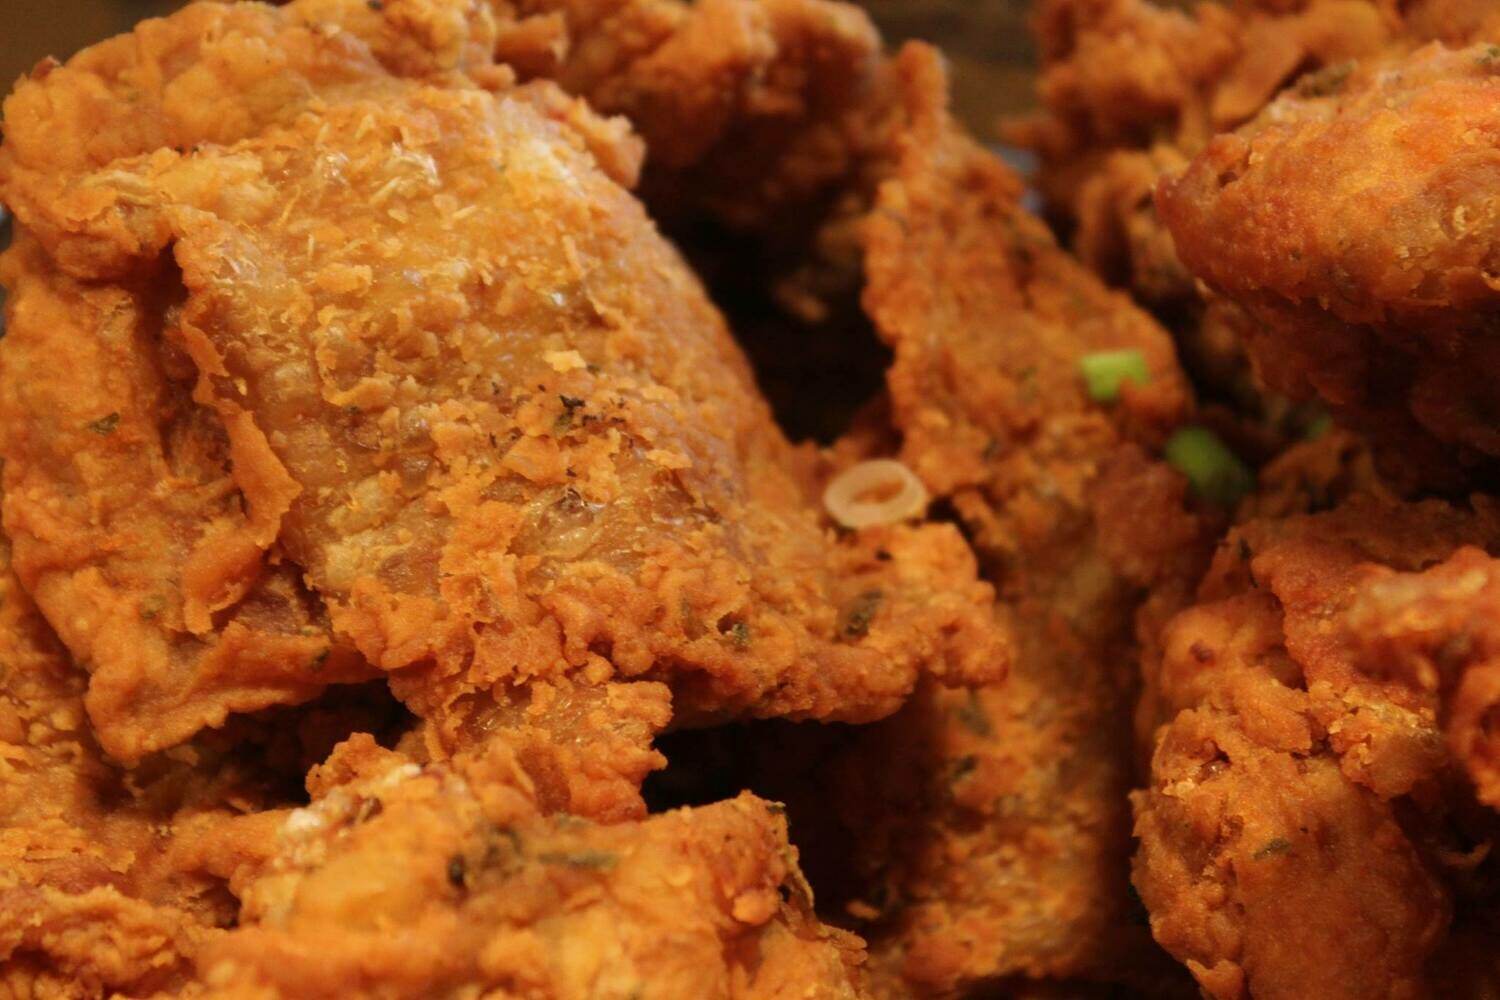 Fried Chicken Platter (Catering)